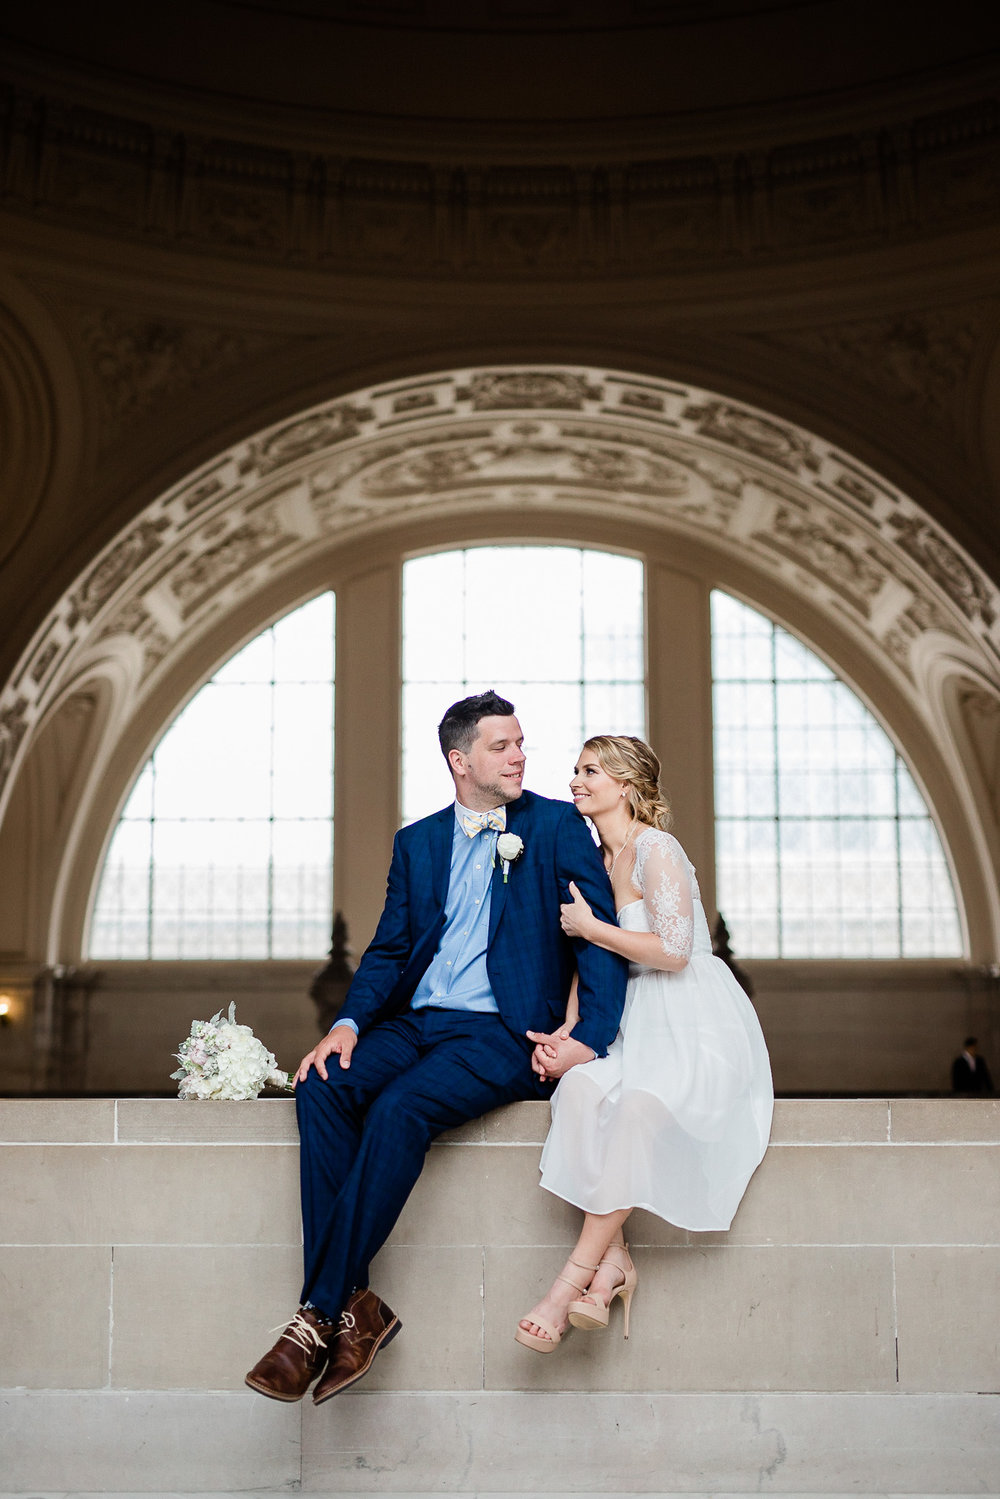 Bride and Groom posing for wedding portraits in San Francisco City Hall